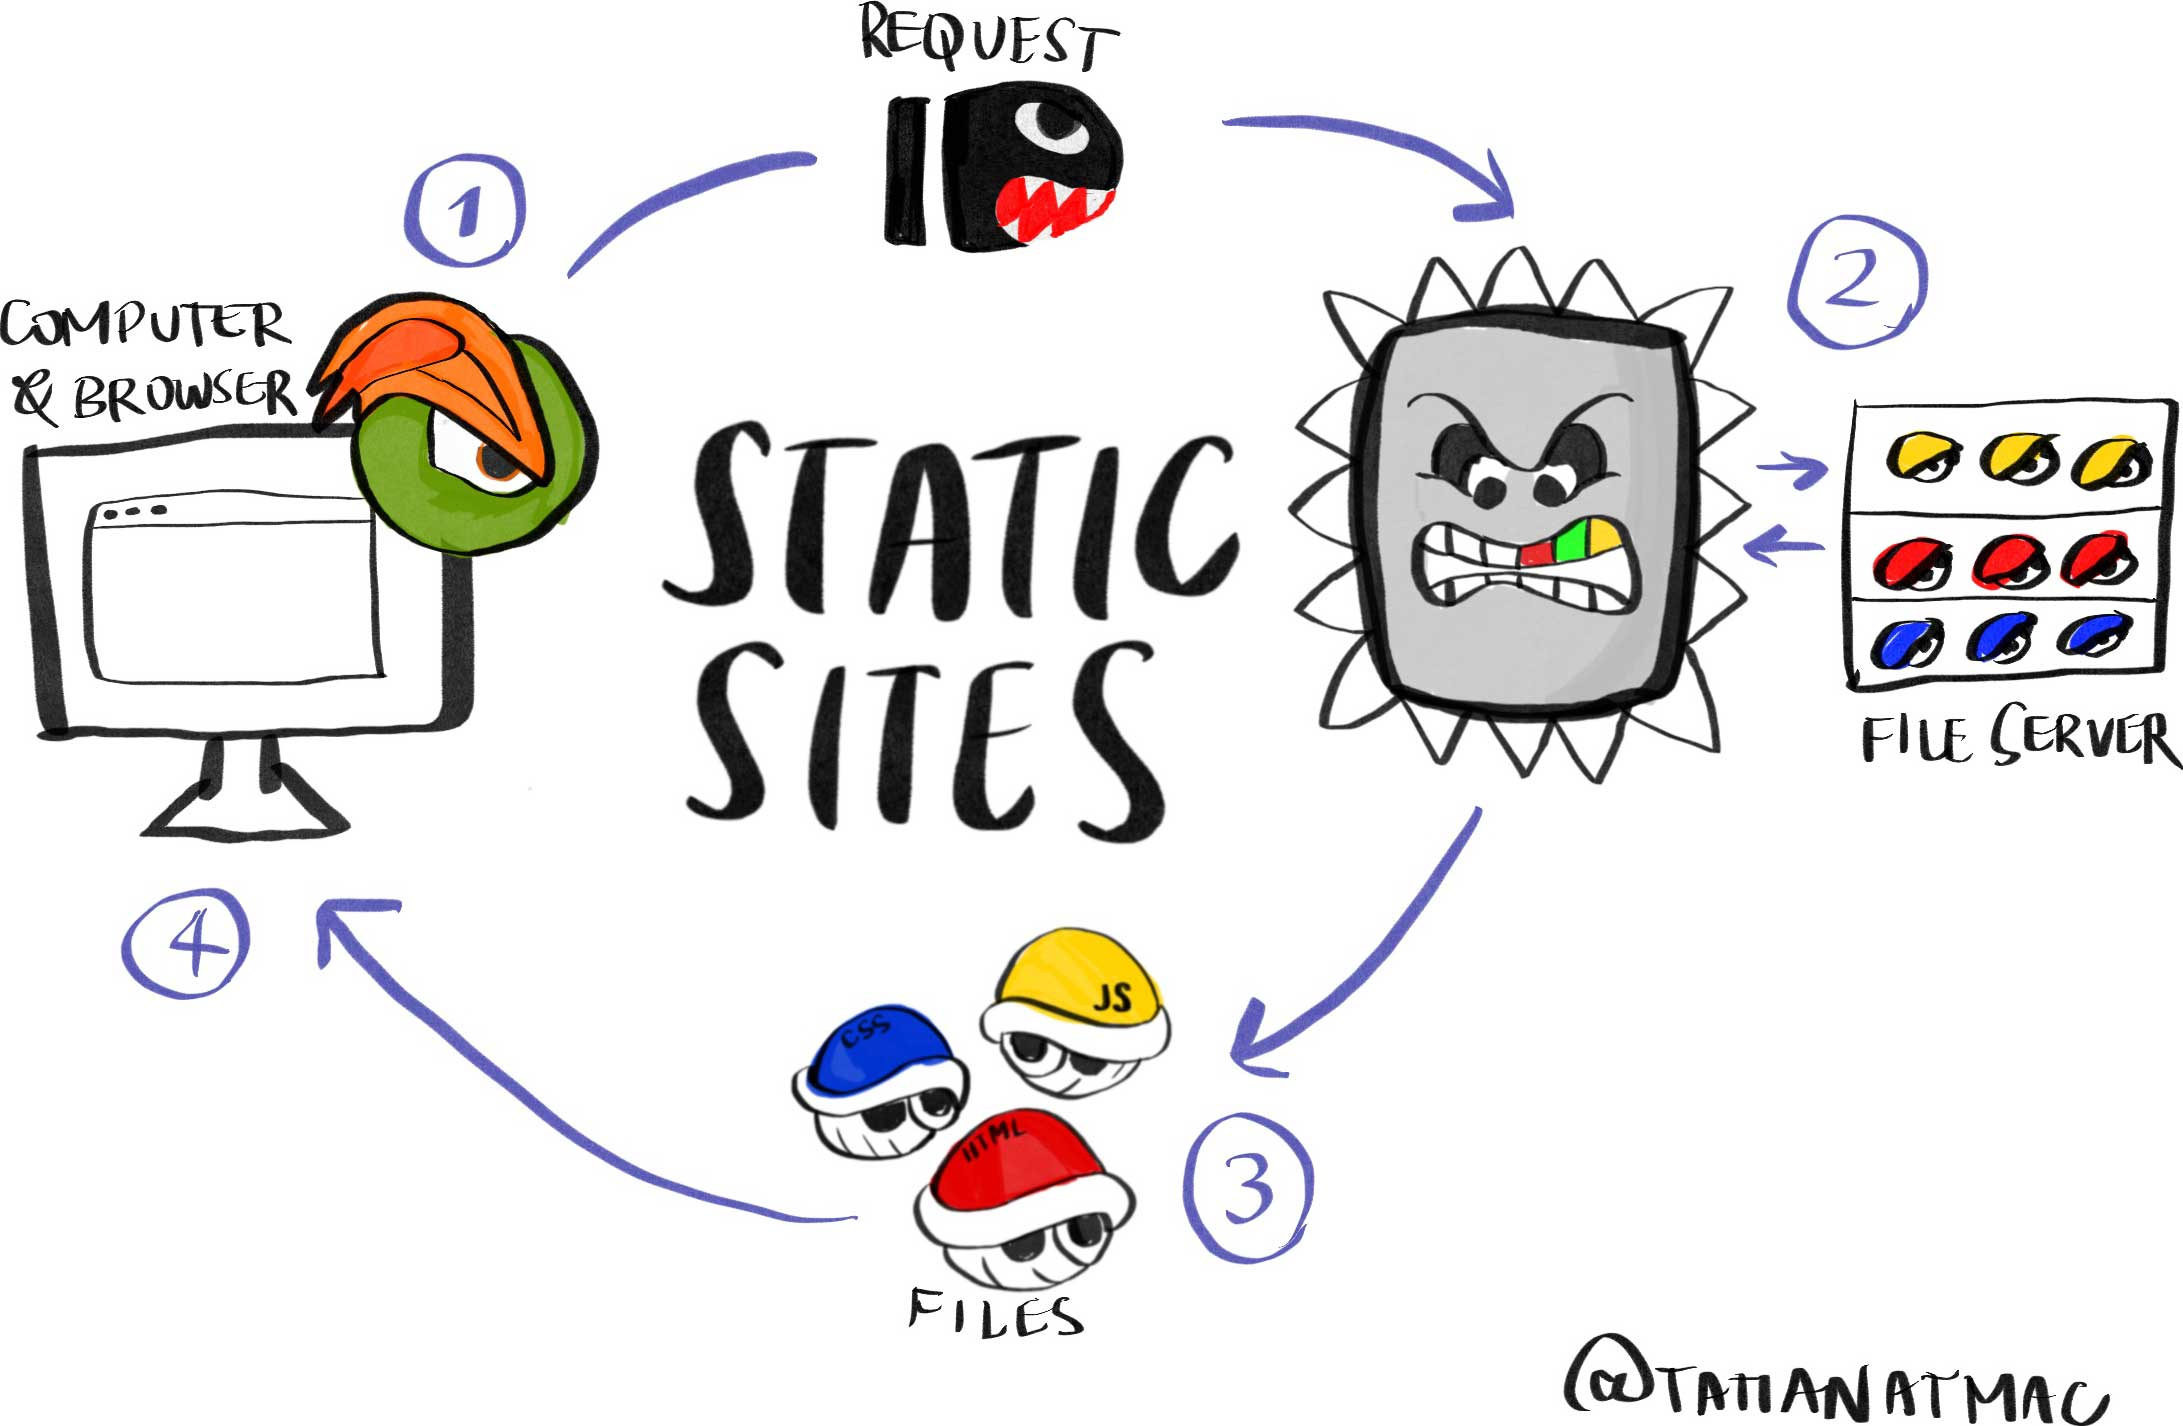 Diagram of static sites where all elements are from Super Mario to illustrate how static sites are generated. Computer and browser (browser logo is Bowser's eye and eyebrow done in Firefox/Edge style) sends a request (Bullet Bill) to the web server (Thomp), which then sends back static files (Koopas dresed as HTML, CSS, and JS files).